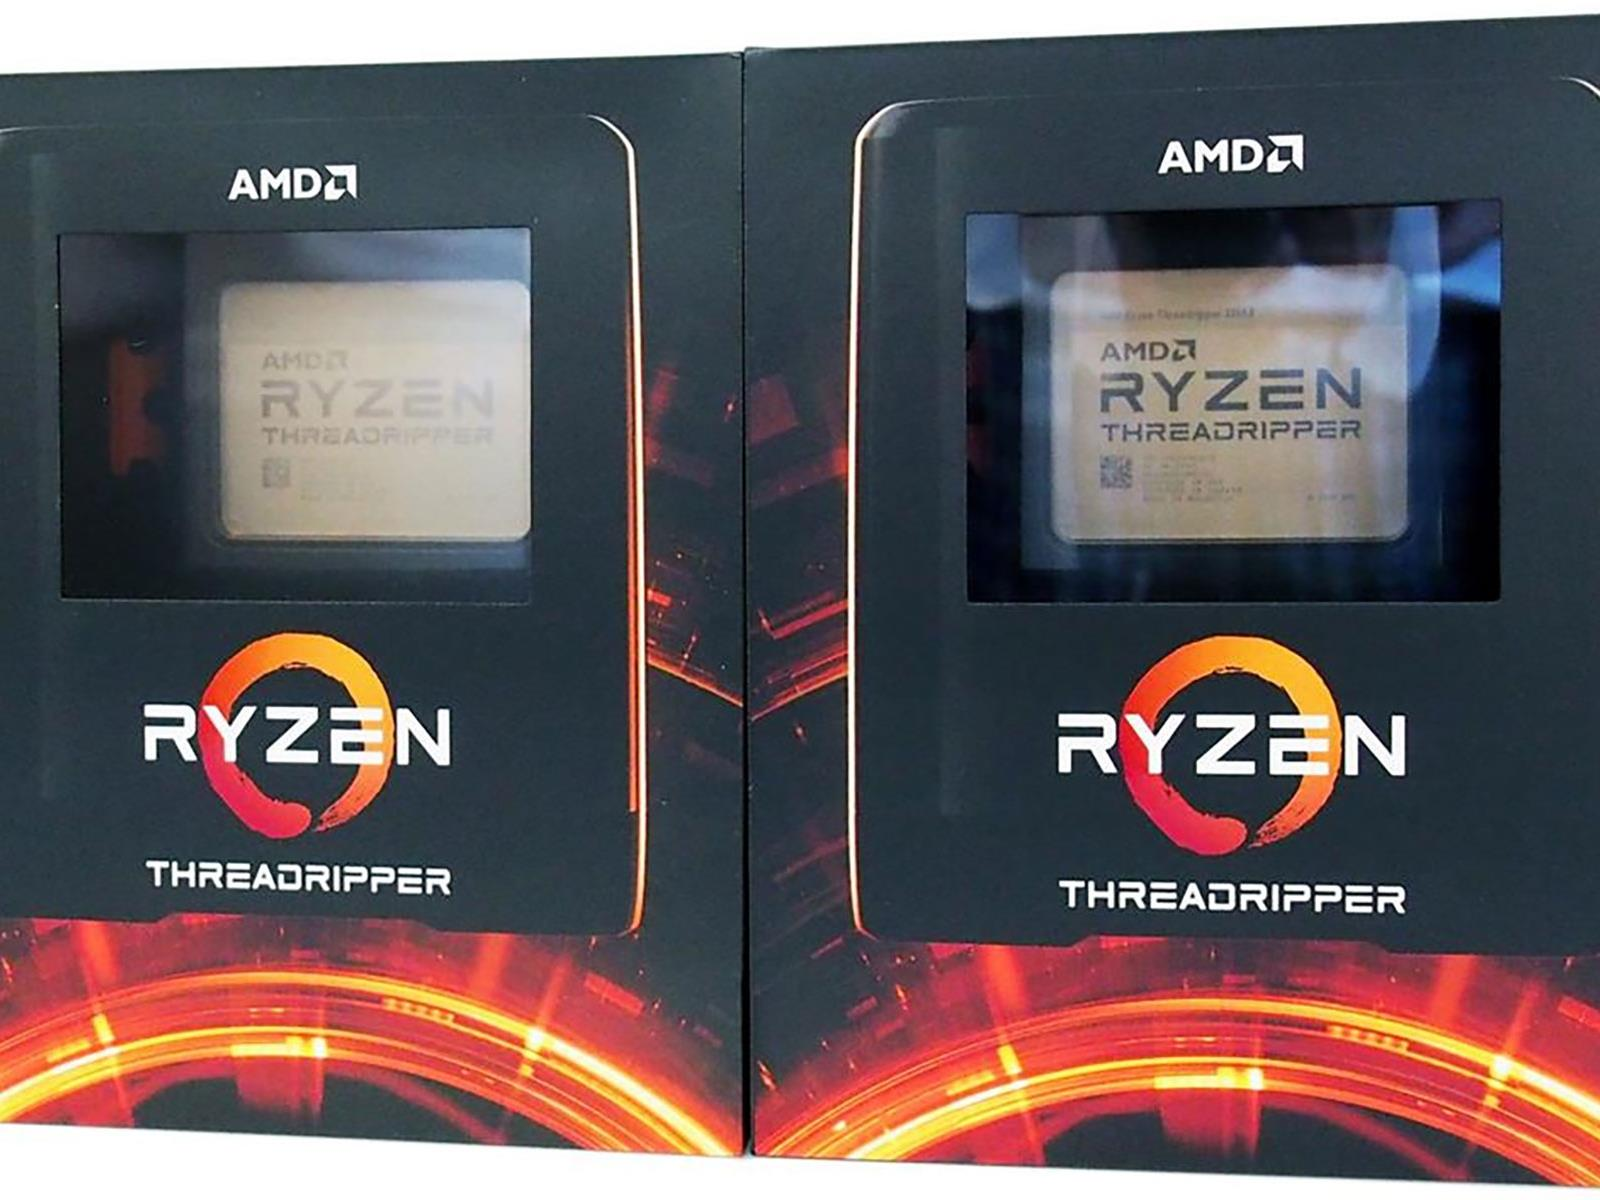 Spec Leak Shows Amd Threadripper Pro 3000 Zen 2 Family To Include 12 And 16 Core Chips Hothardware